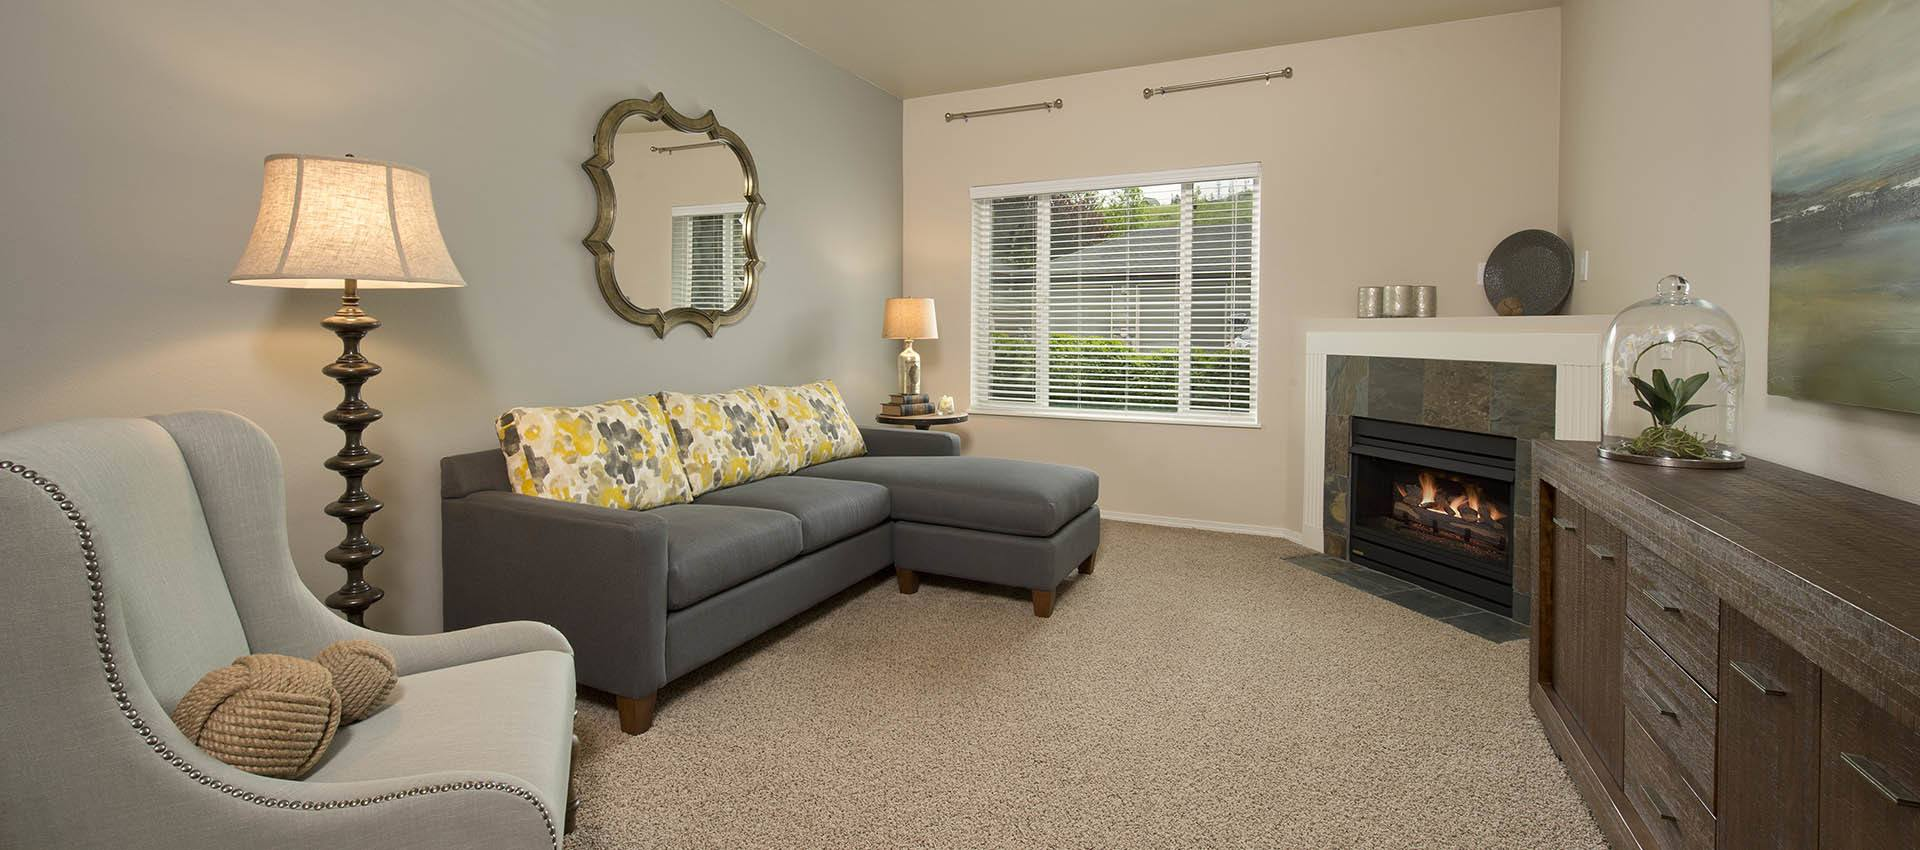 Spacious Living Room at Altamont Summit in Happy Valley, OR